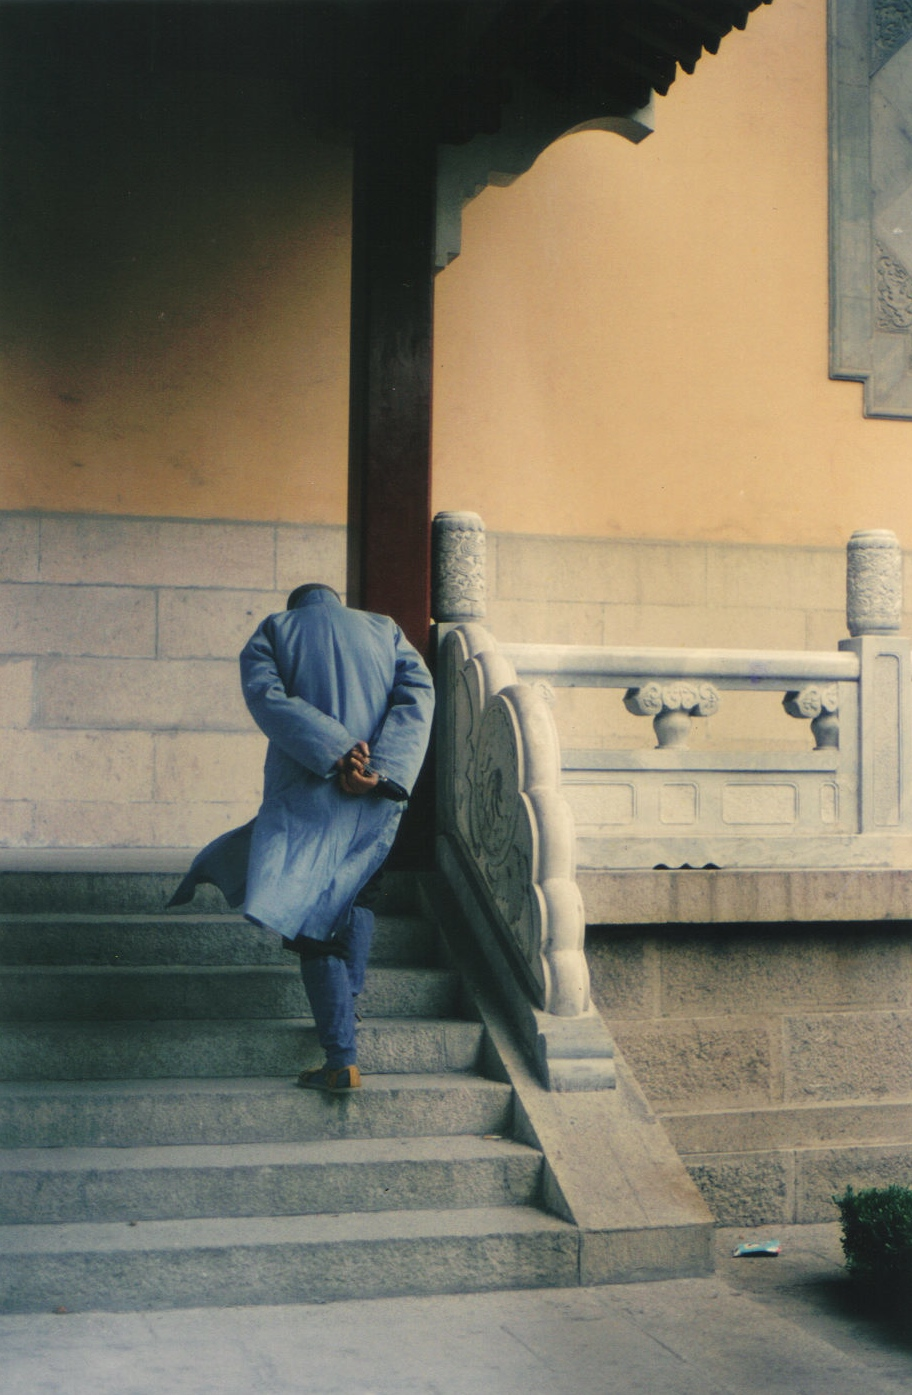 """Mindless Monk"", Beijing China 1989 by Karin Lisa Atkinson"